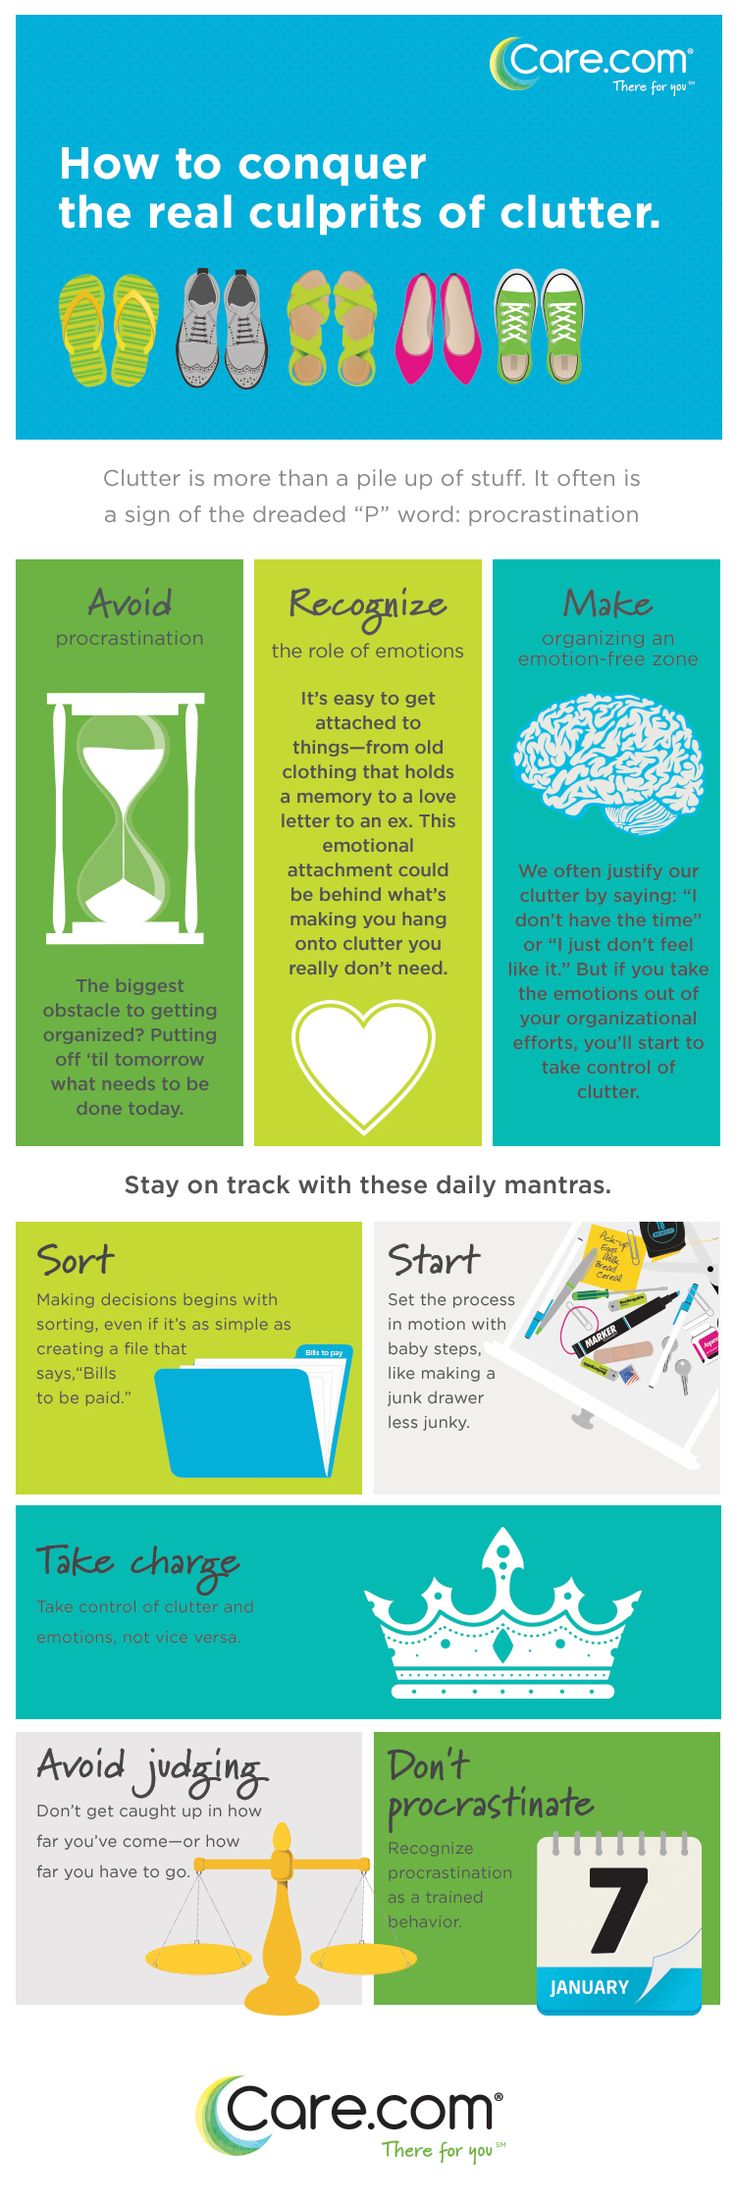 192 best Advice, tips, and useful things images on Pinterest ...